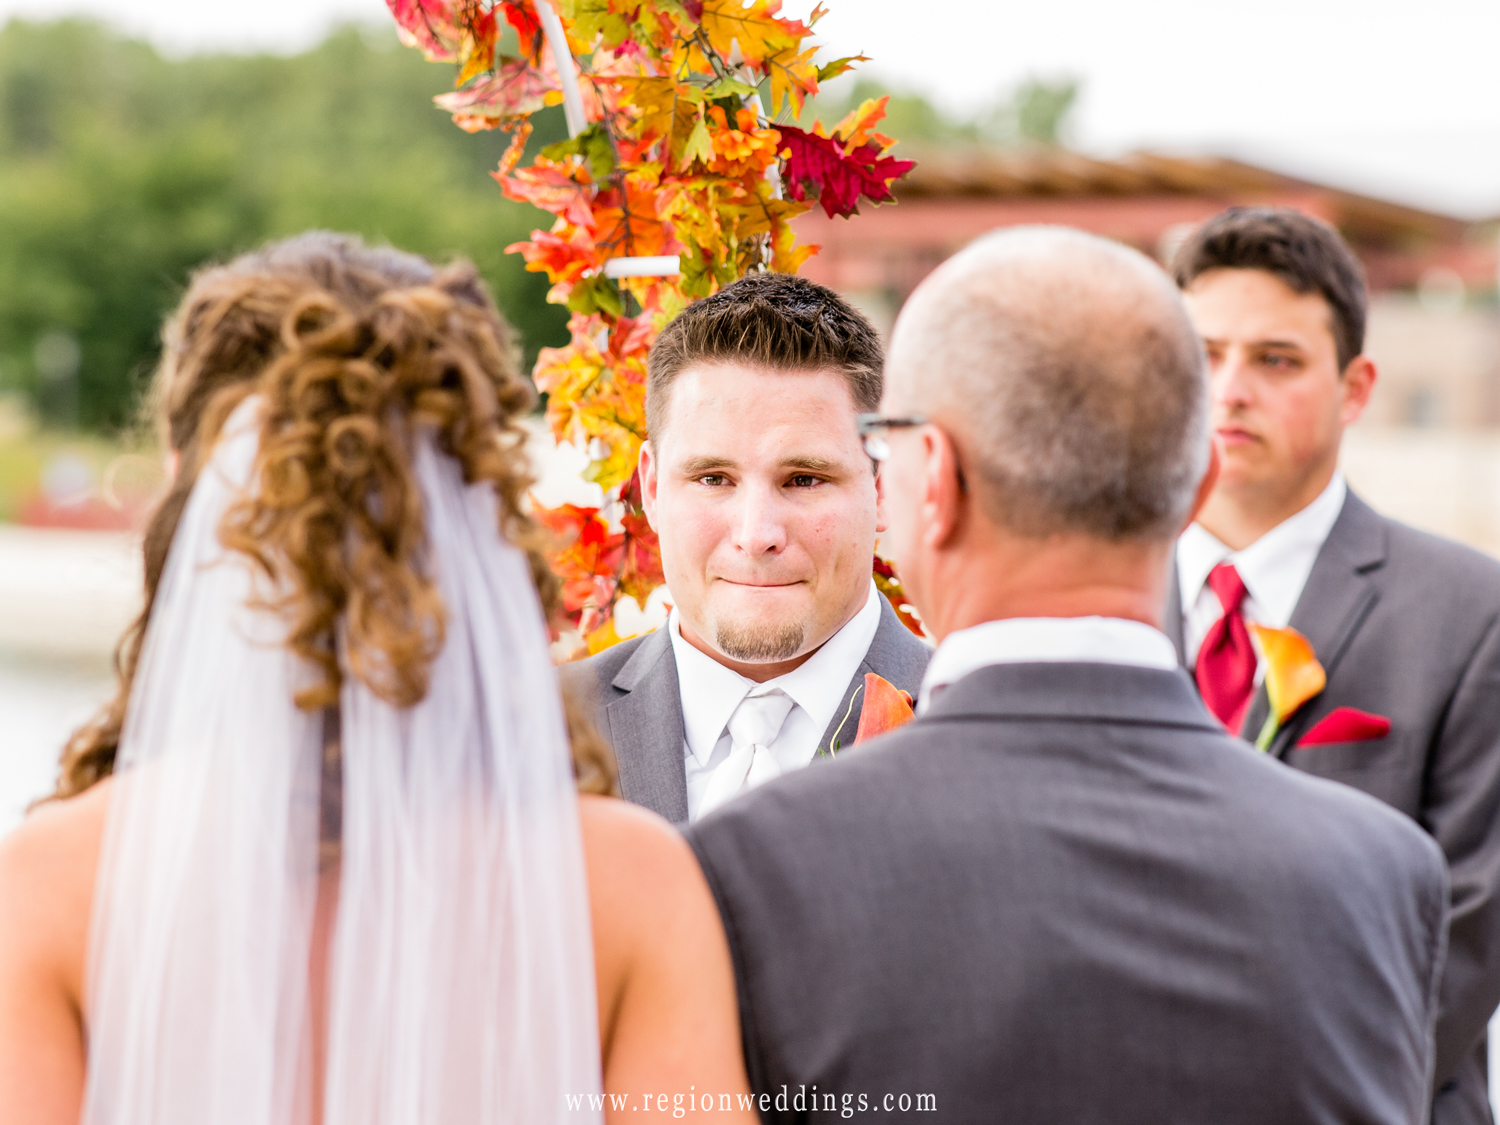 The groom gets emotional as he sees his bride for the first time.